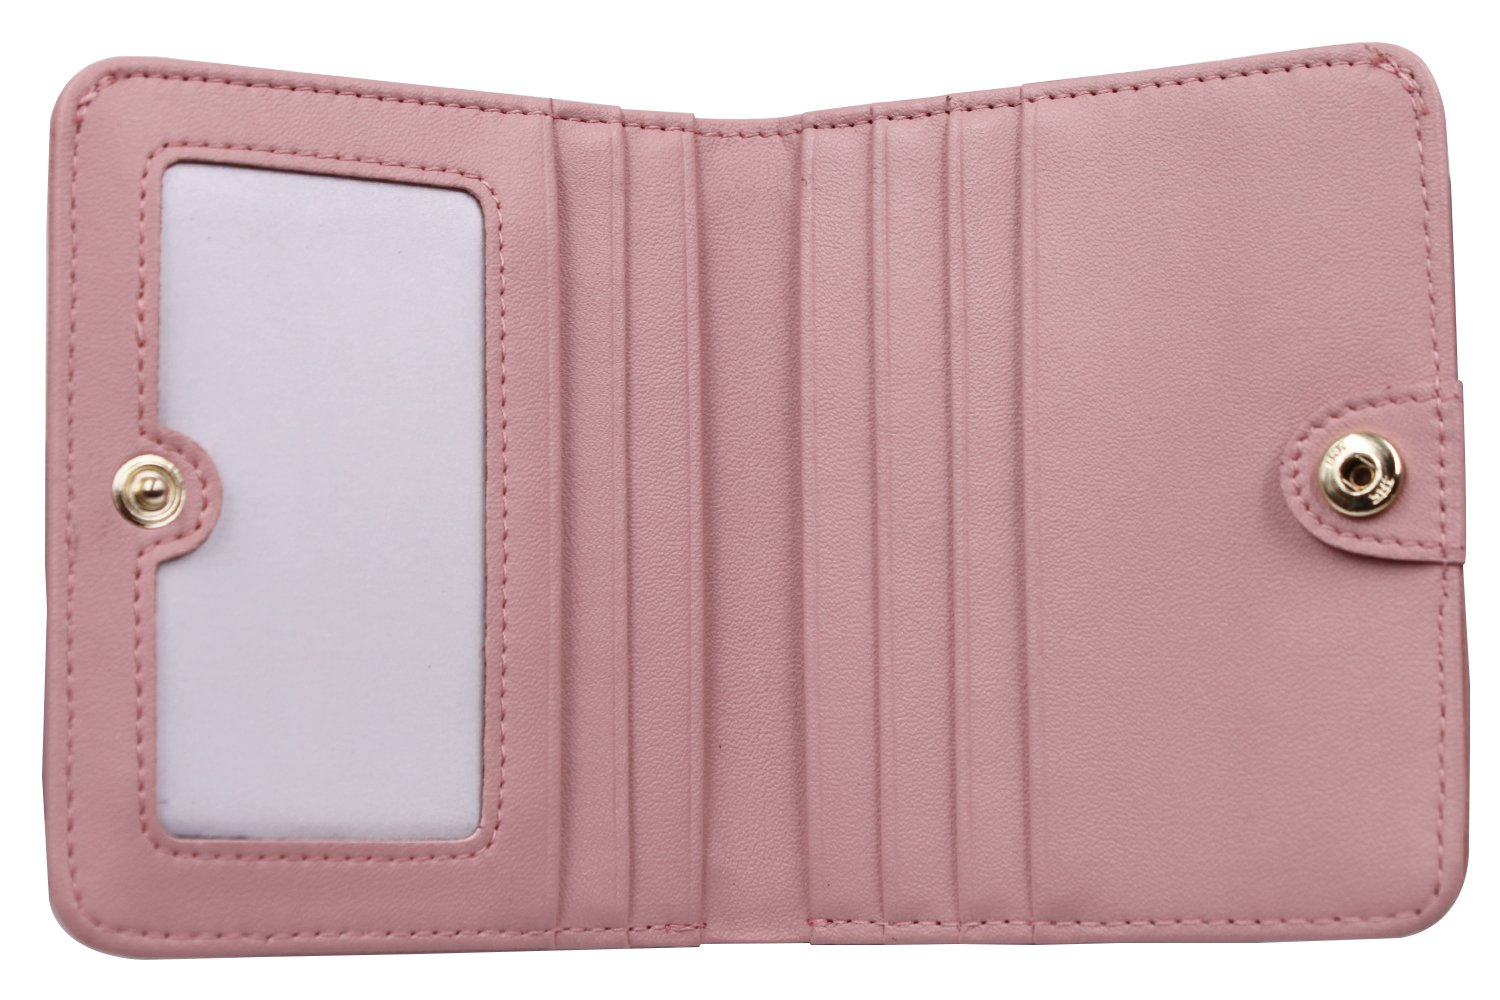 Women's Small Compact Bi-fold Leather Pocket Wallet Credit Card Holder Case with ID Card Window (New Pink) by ARRIZO (Image #3)